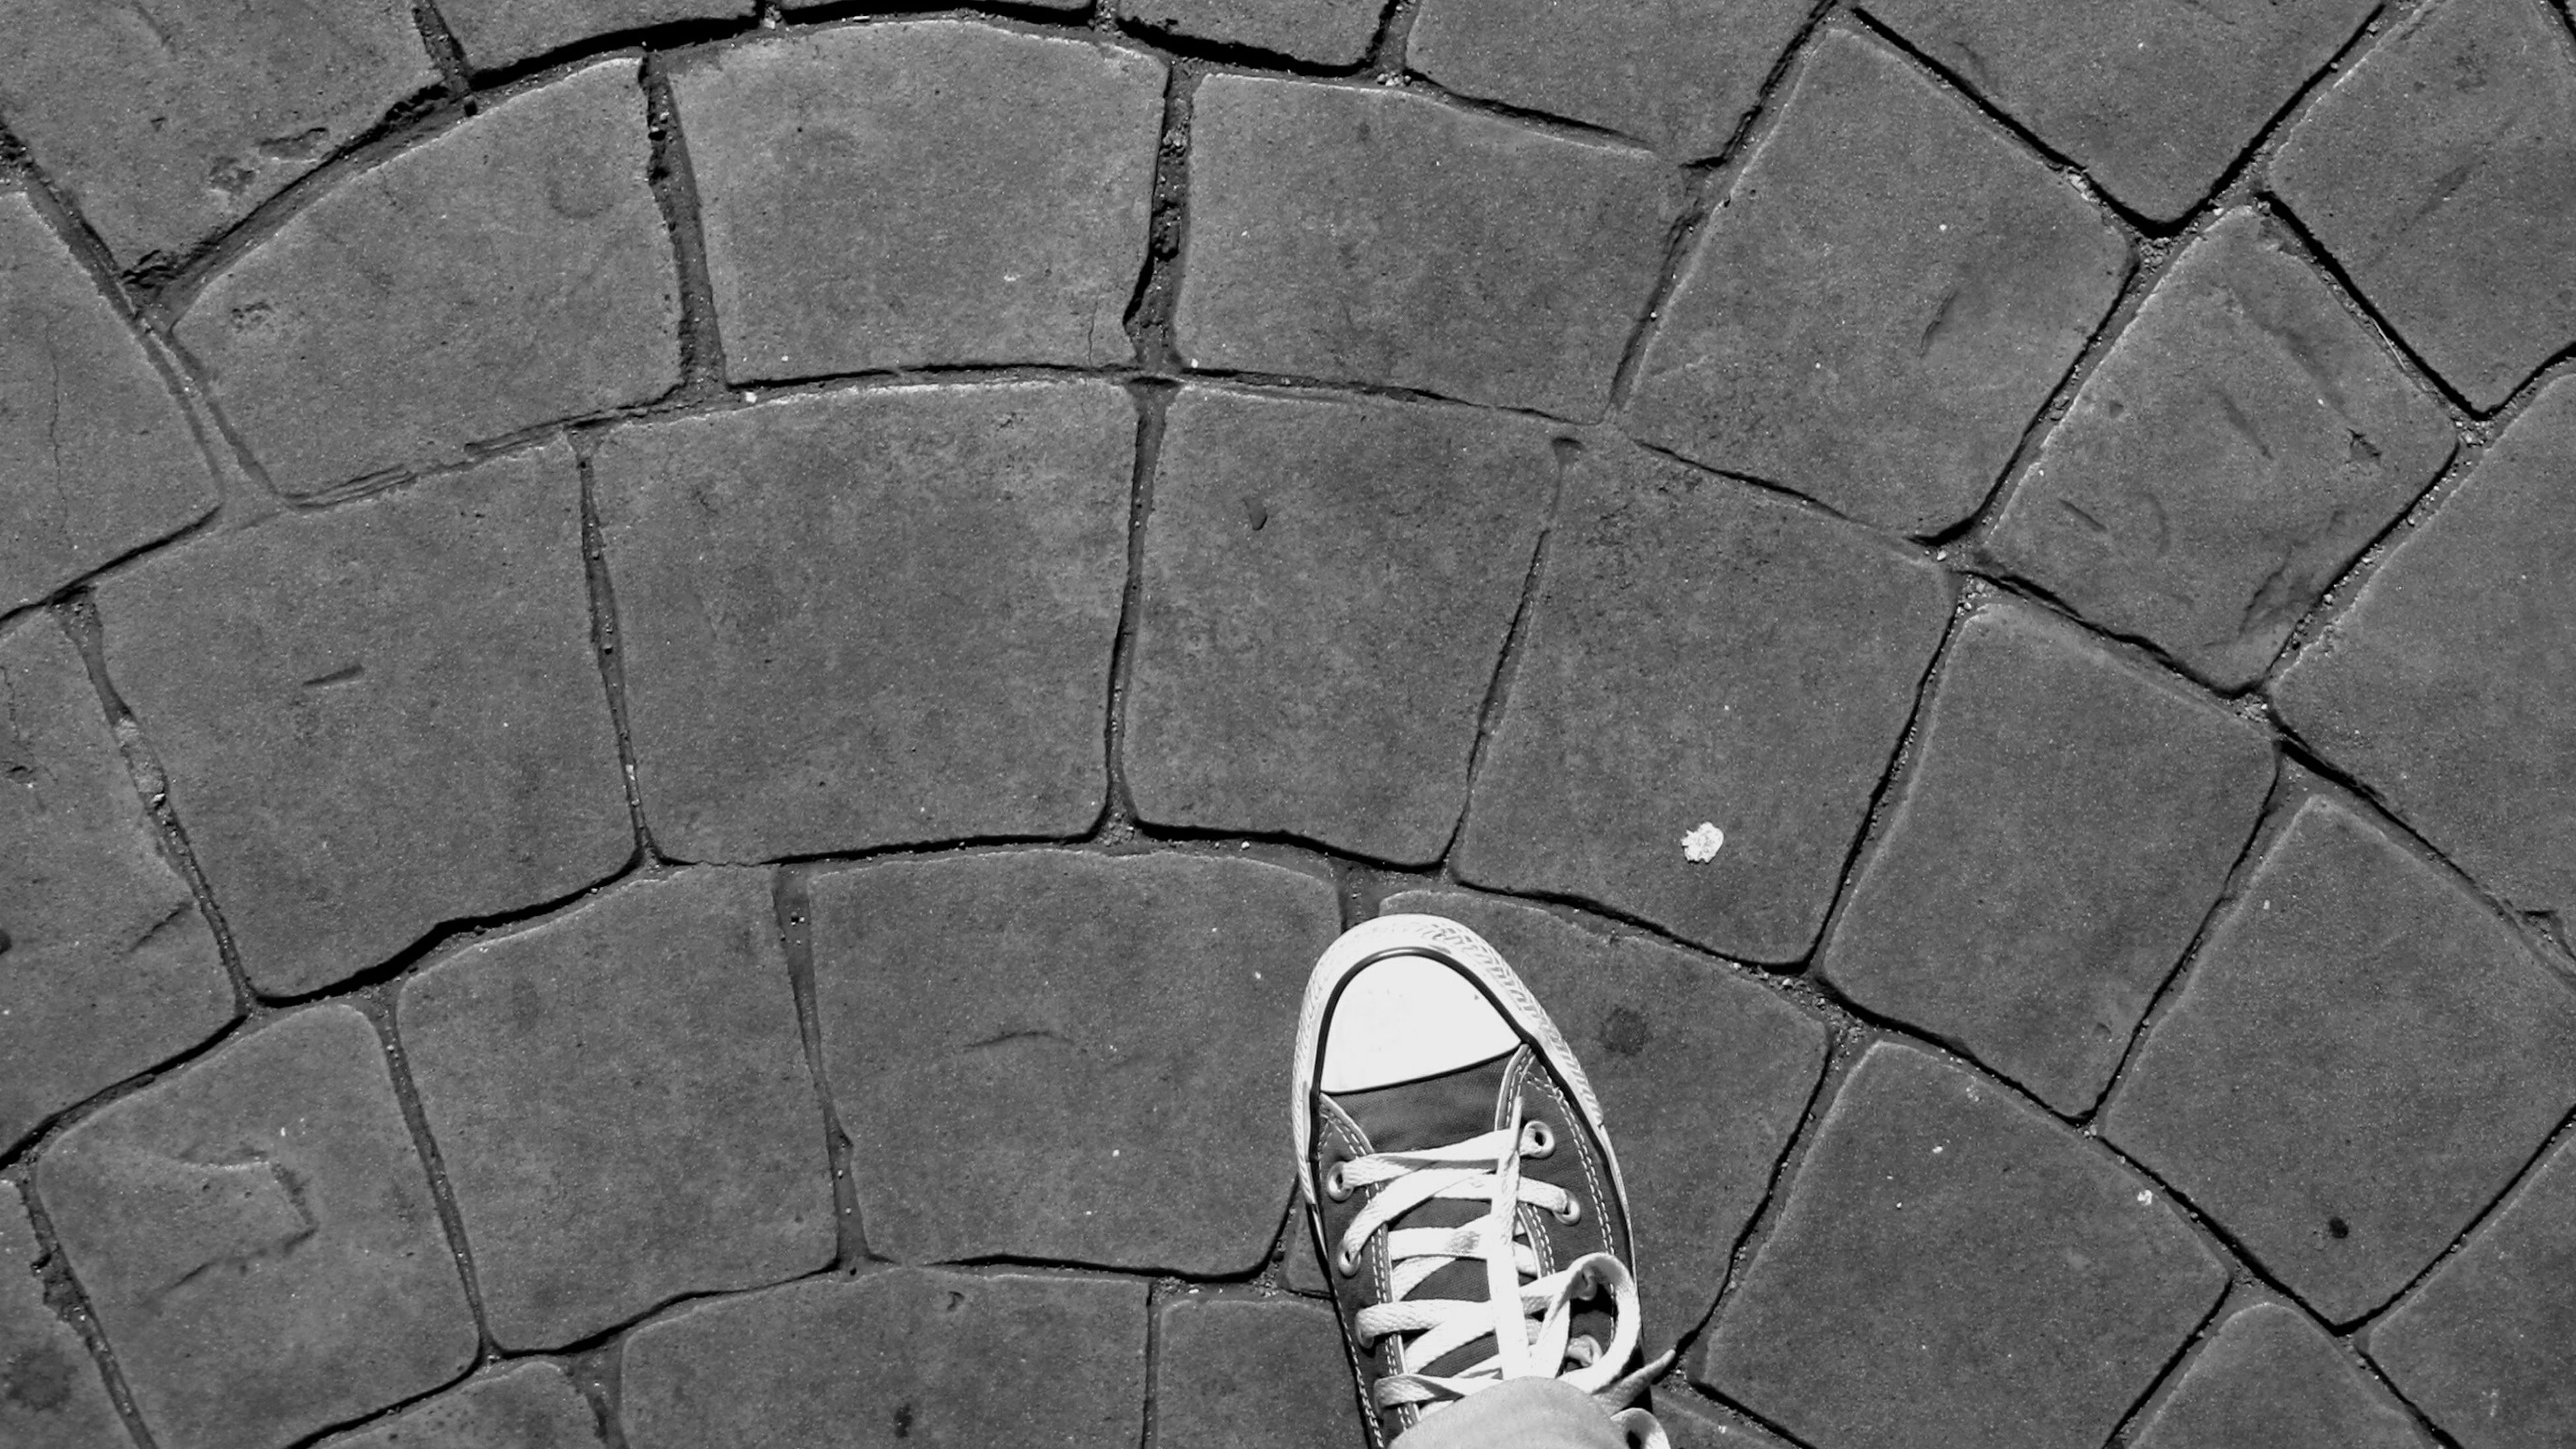 cobblestone, high angle view, paving stone, pattern, footpath, street, shoe, directly above, day, outdoors, low section, pavement, tiled floor, sidewalk, circle, sunlight, standing, geometric shape